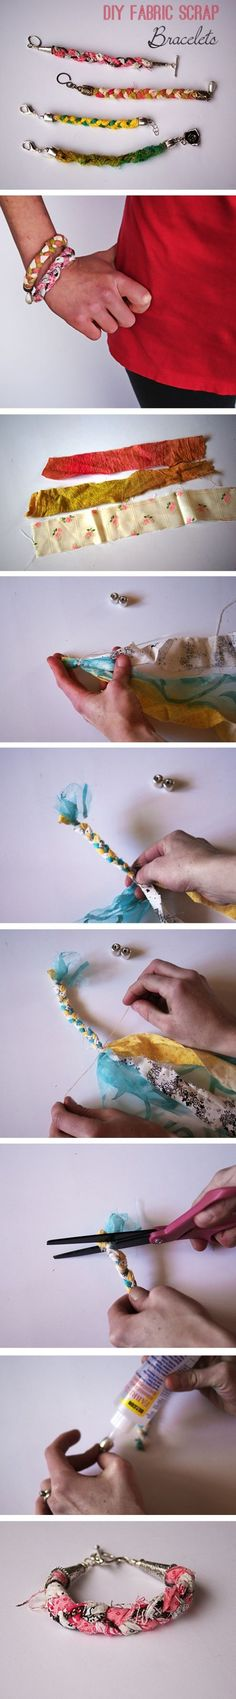 Easy Scrap Fabric Bracelet DIY - how cool would it be if you made one out of the fabric scraps from the bow ties R R Bowles? what do you think Jones Jones Leichtman Jantzen Cute Crafts, Crafts To Do, Diy Crafts, Fabric Bracelets, Fabric Jewelry, Braided Bracelets, Friendship Bracelets, Ribbon Jewelry, Jewelry Bracelets